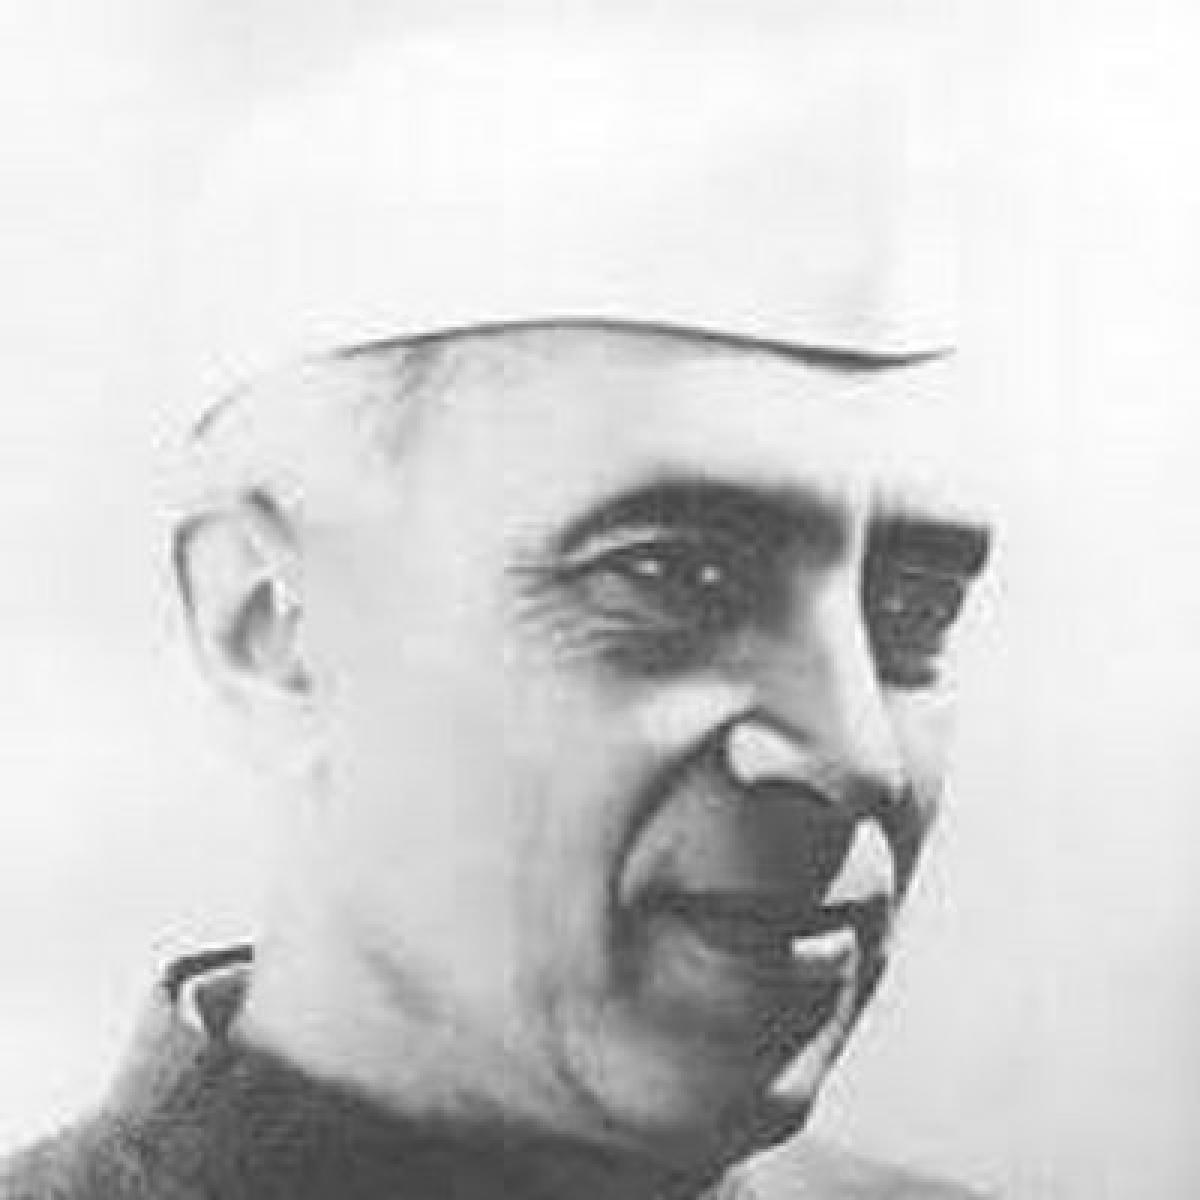 The culture ministry's move to set up a museum of all the prime ministers of India was seen by the critics as a fresh effort of the Modi government to eclipse Nehru's legacy with the legacies of the other prime ministers.